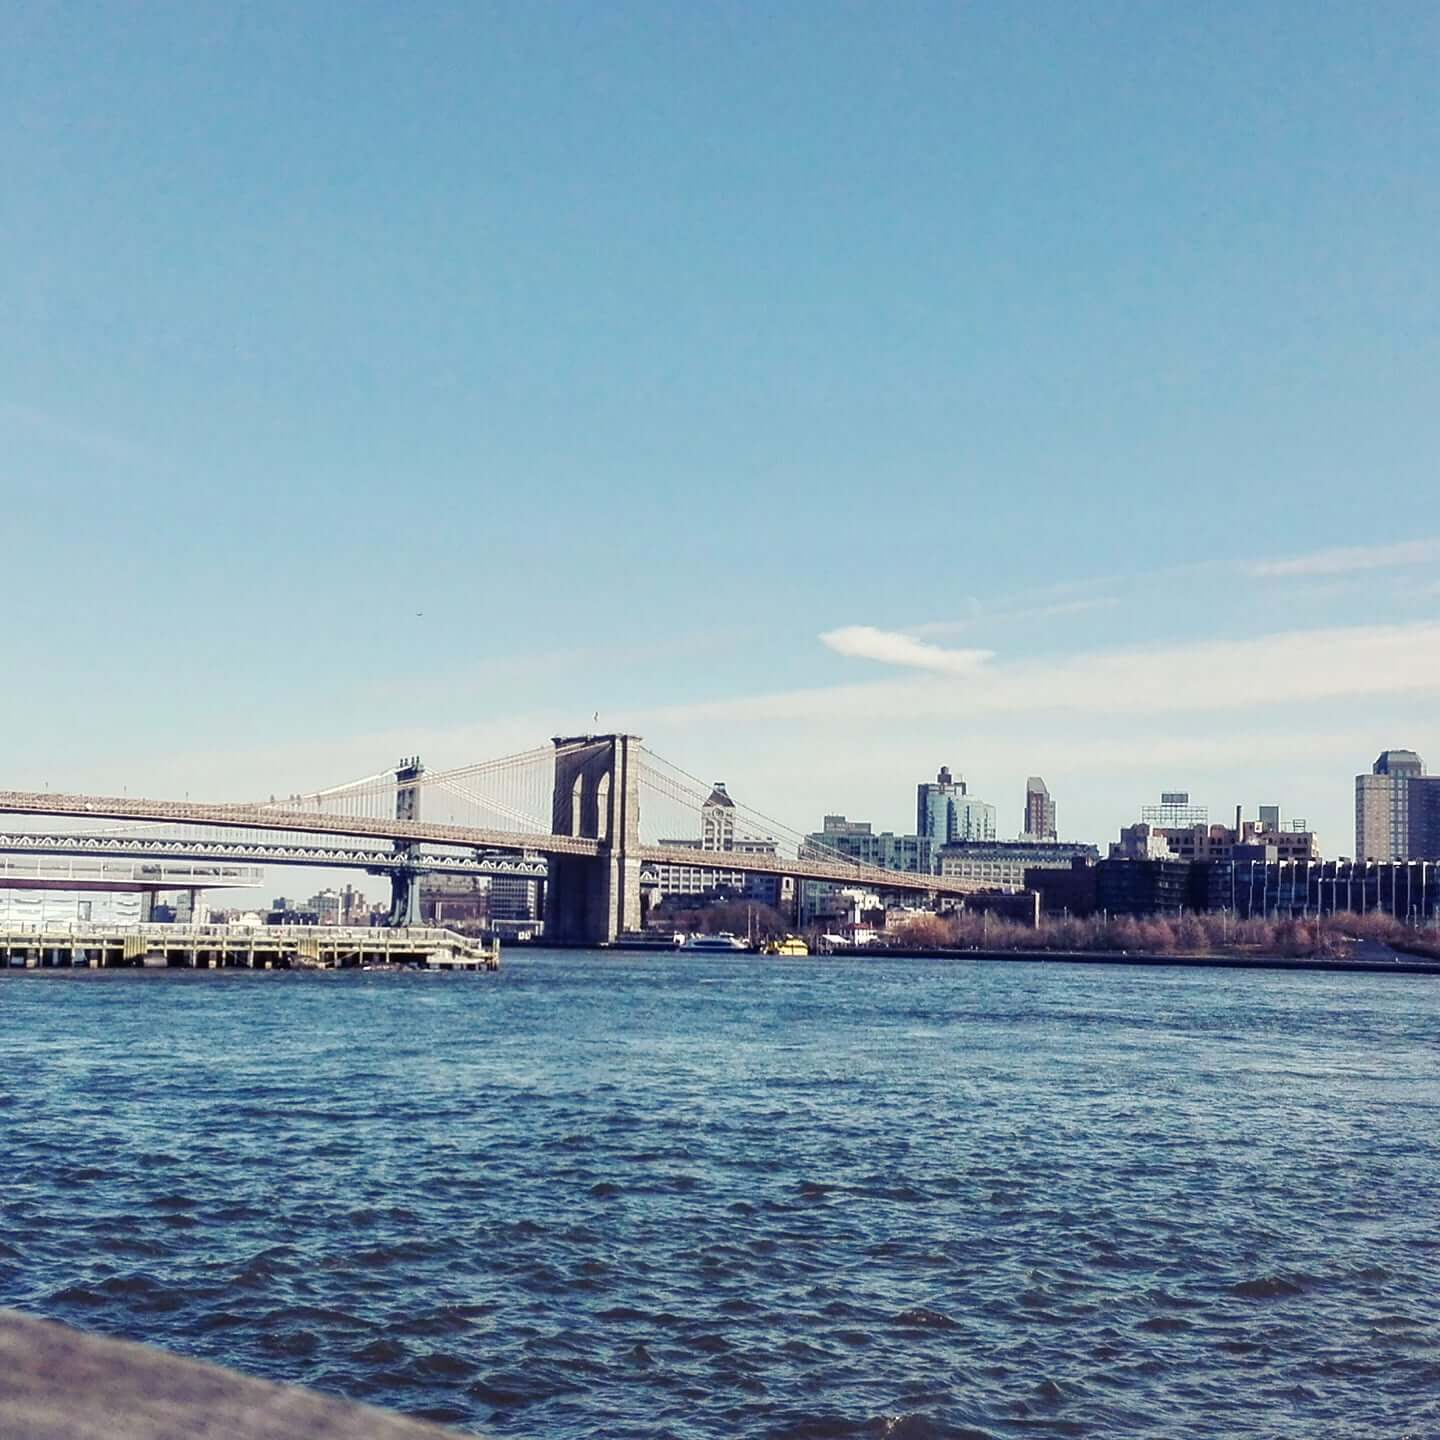 viaggiare-zaino-in-spalla-viaggio-a-new-york-skyline-ponte-brooklyn